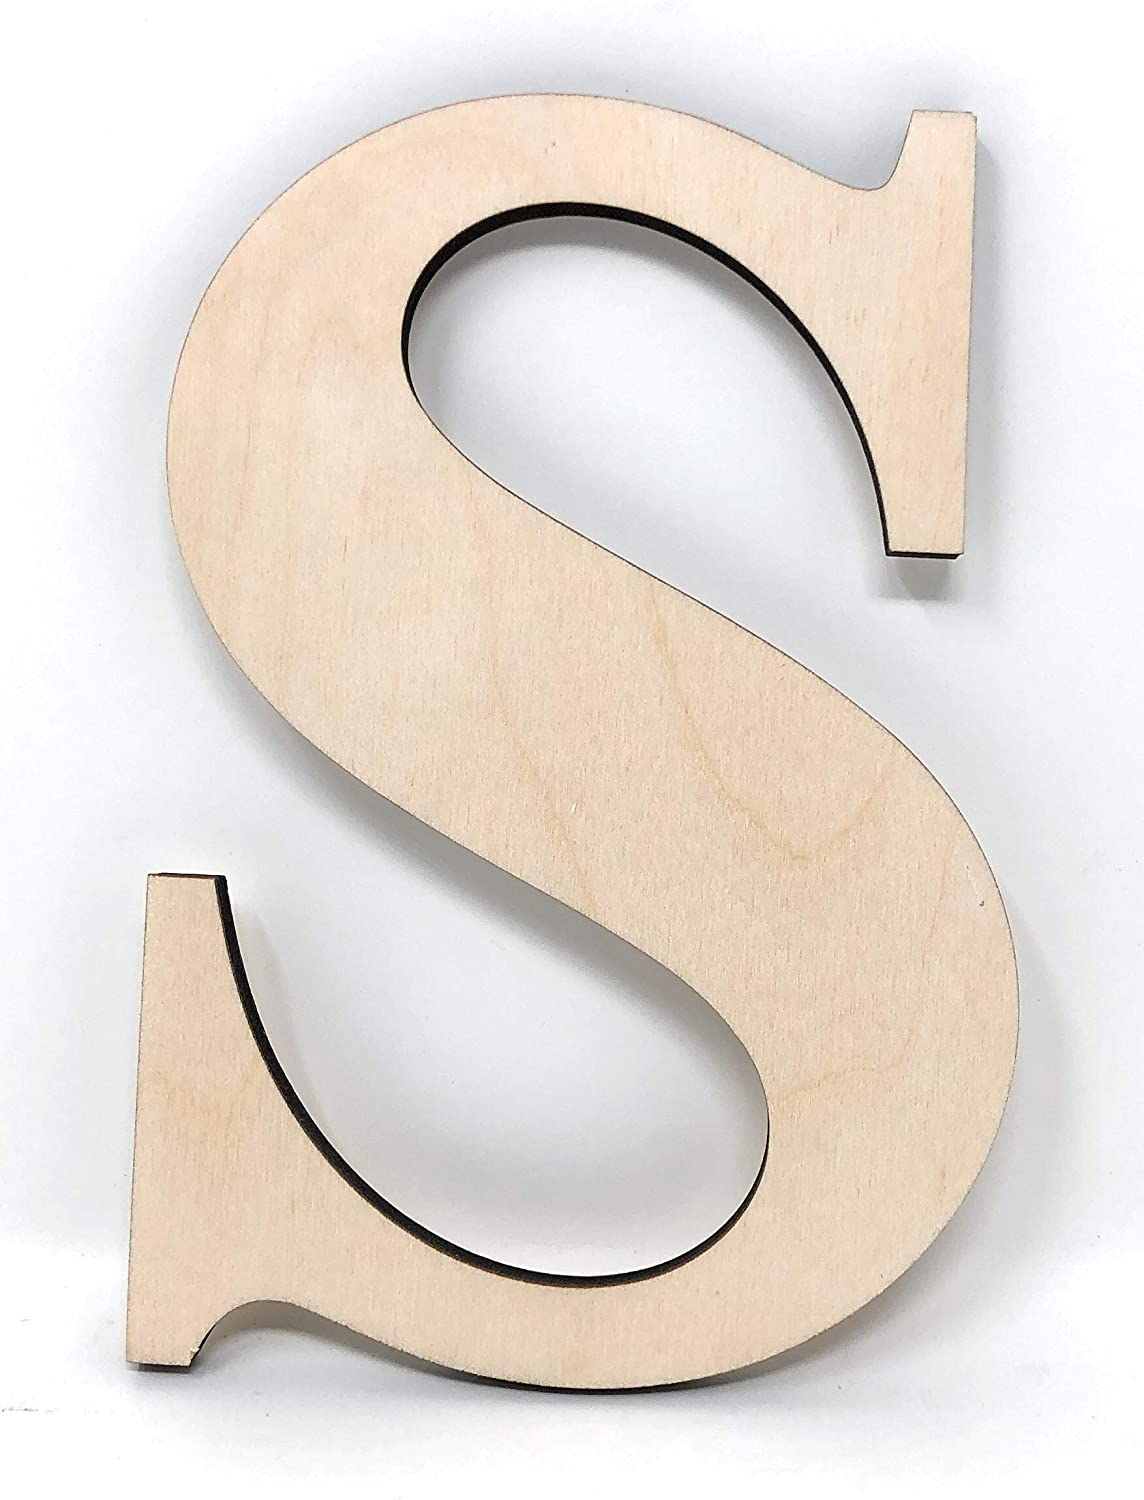 "Gocutouts 12"" Wooden A Unfinished Wooden Letters Paint Ready Wall Decor Times Letter (12"" - 1/4"", S)"